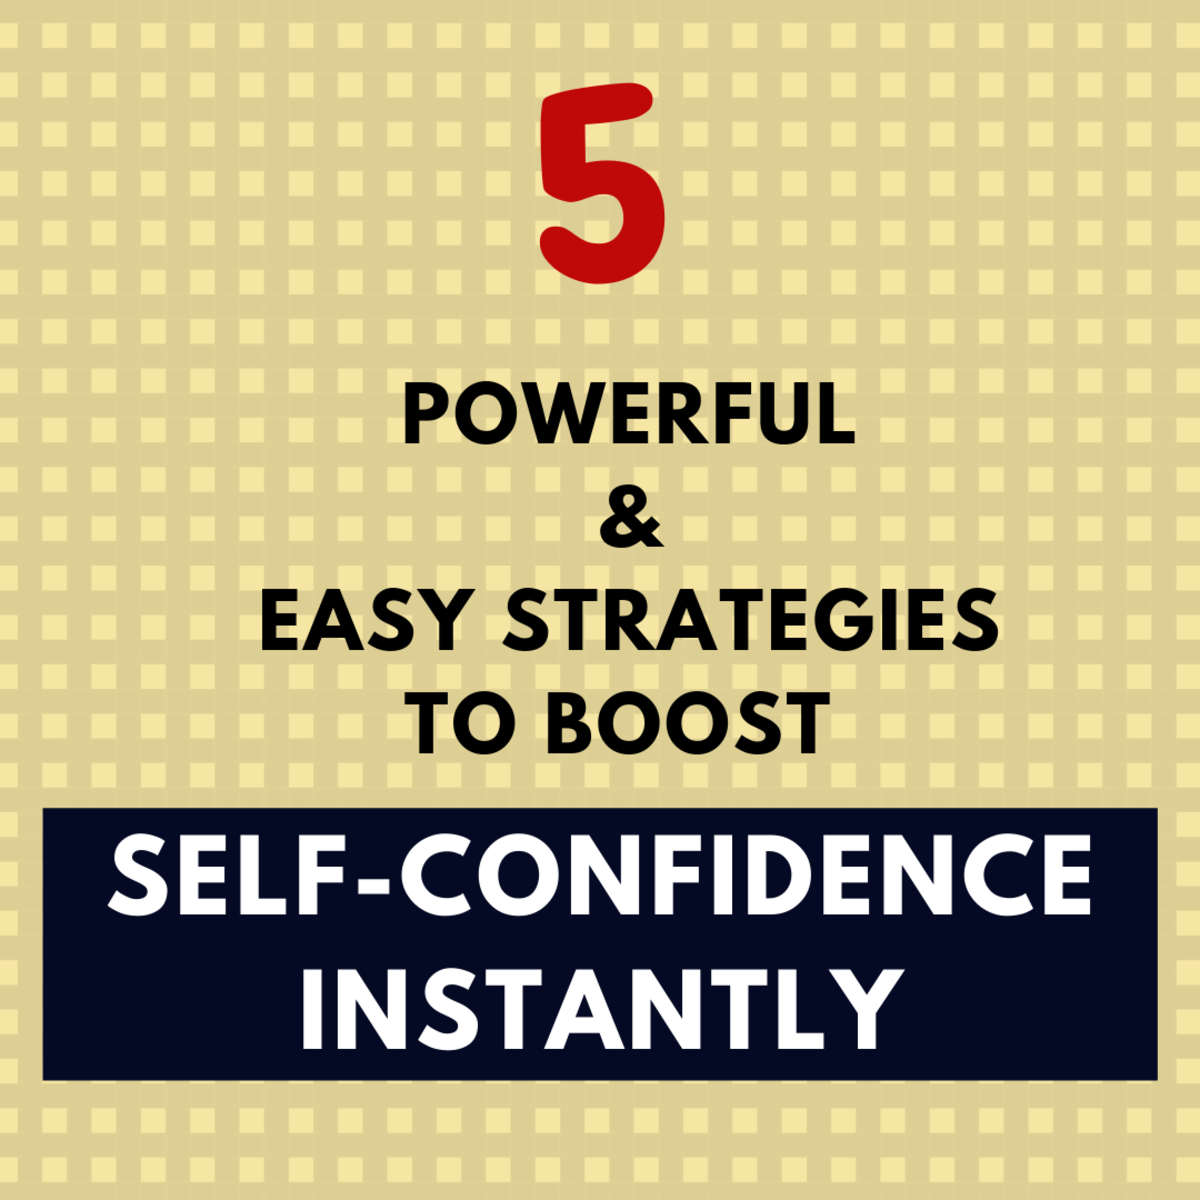 5 Powerful and Easy Strategies to Boost Self-Confidence Instantly